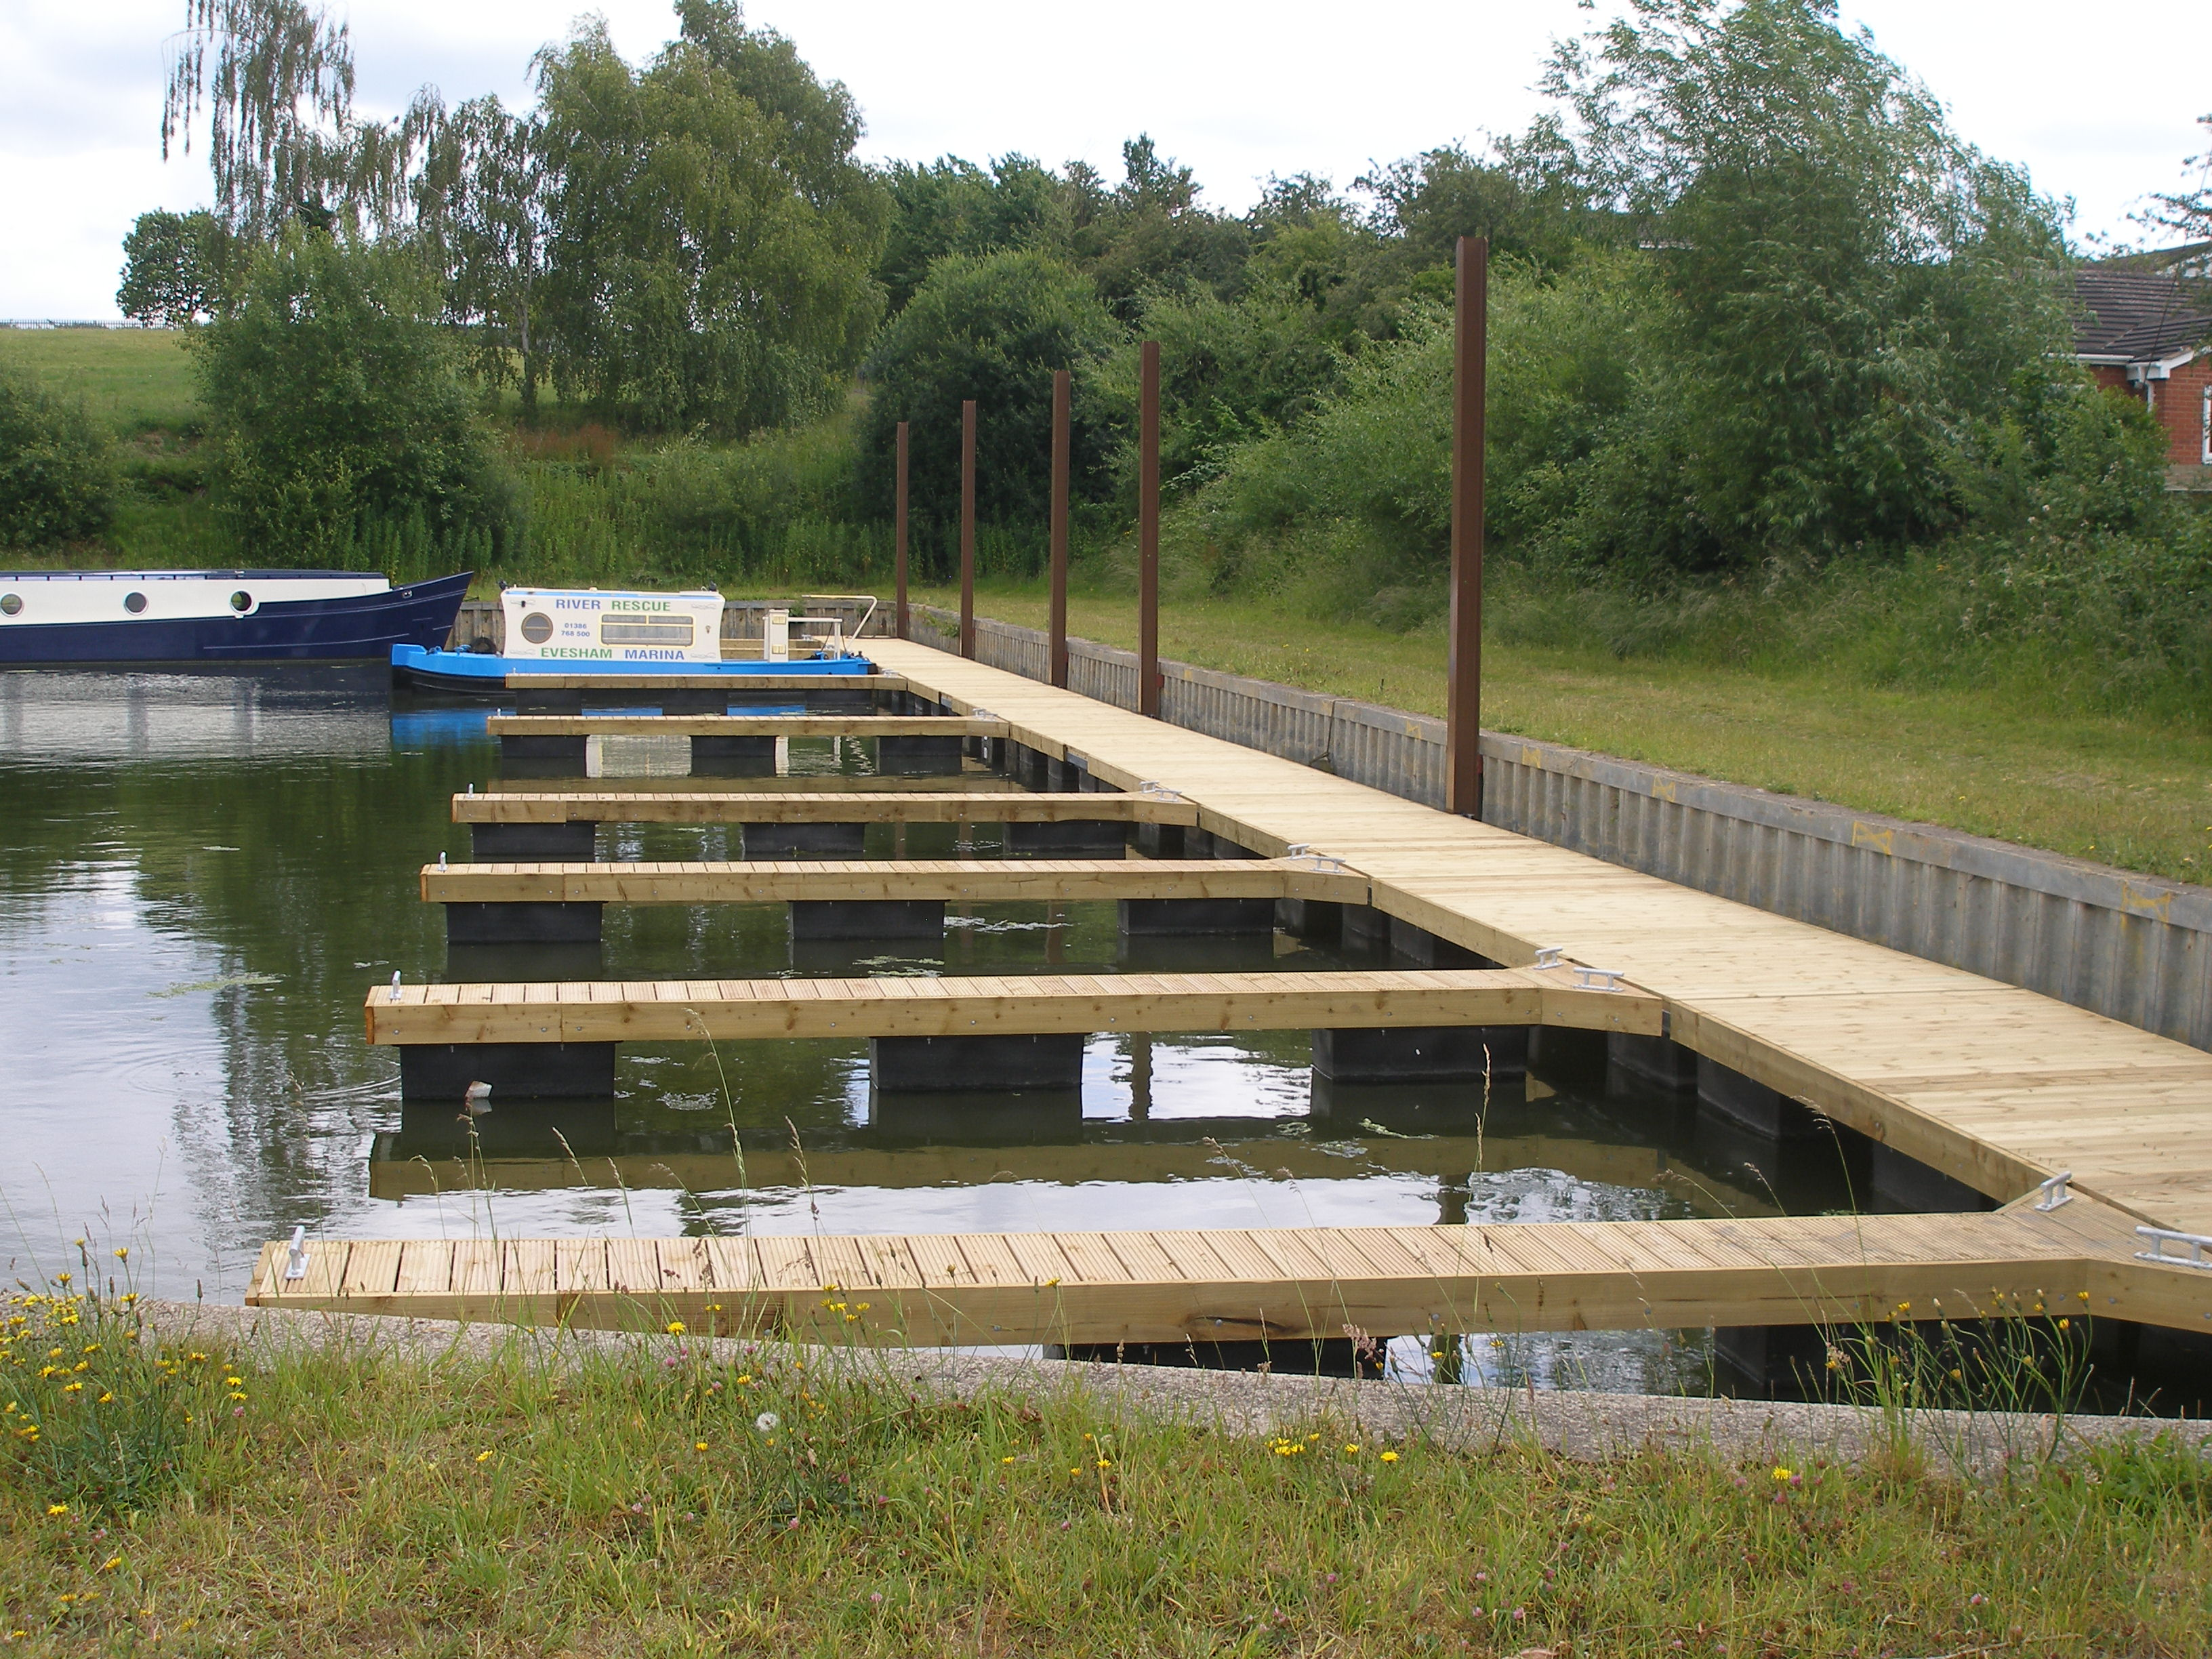 Mooring system for canal boats